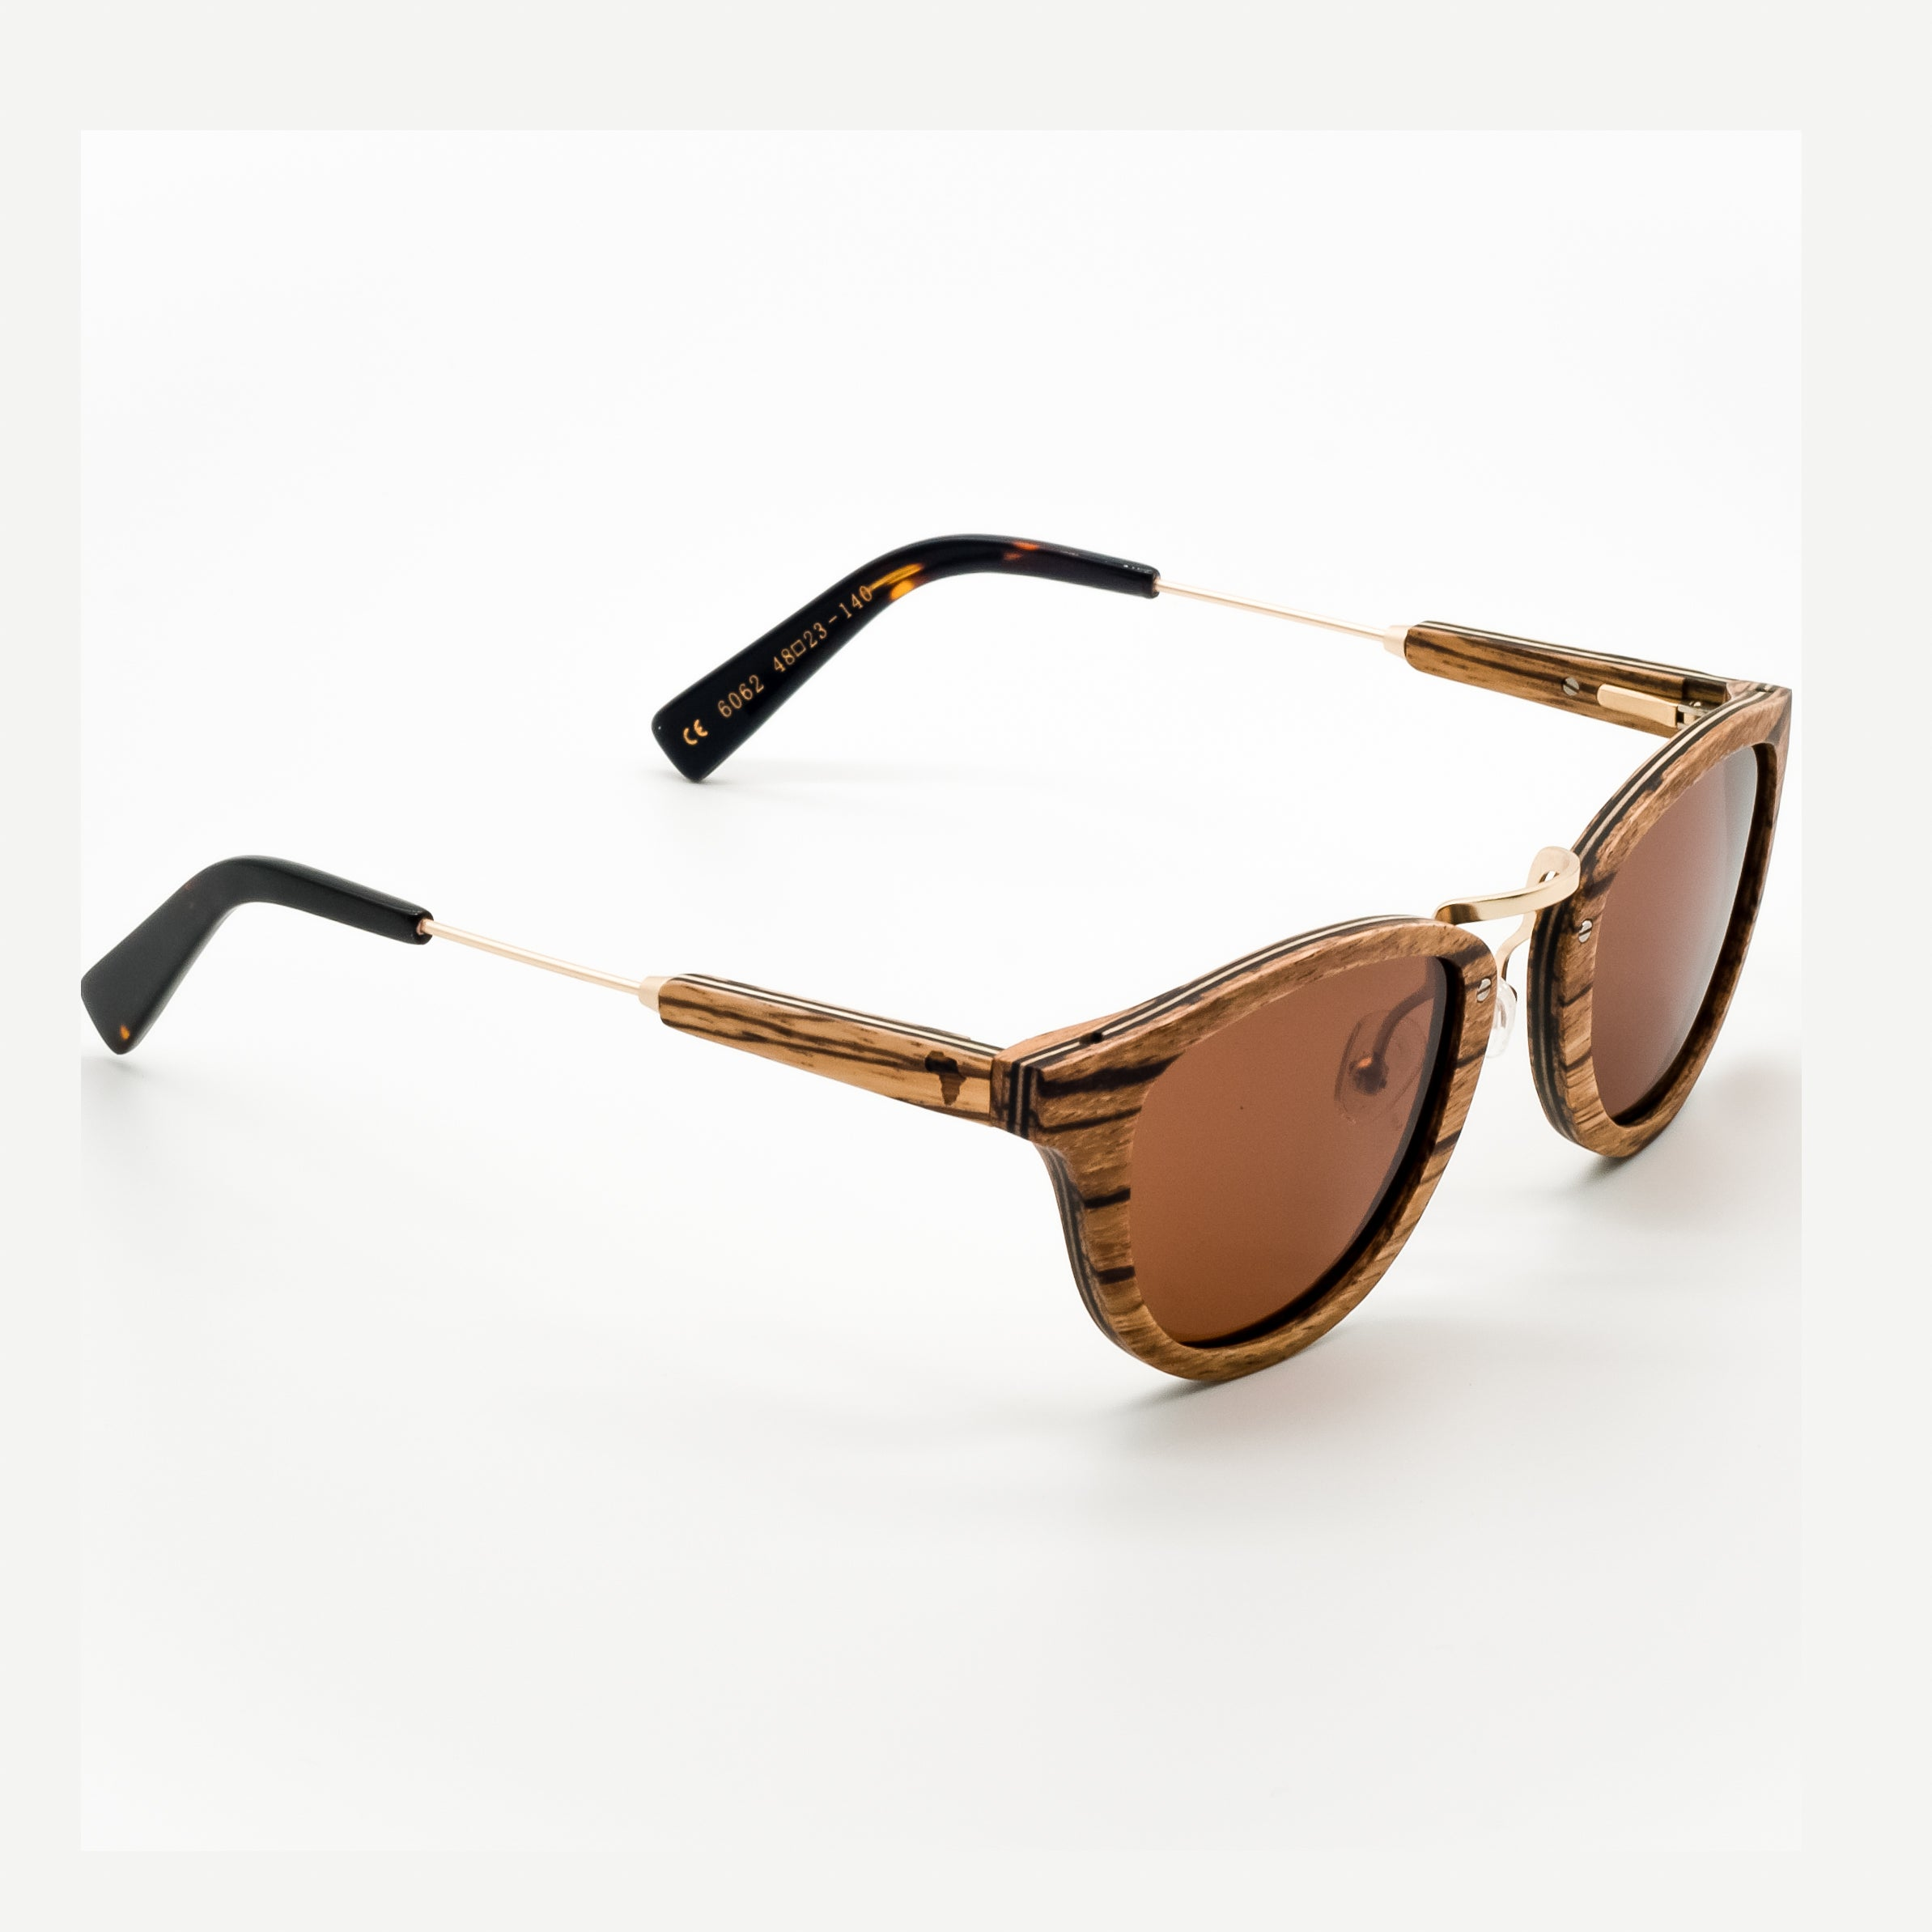 ThisGuy Polarized Wooden Sunglasses - Zebra Wood Fighter Full Frame Right